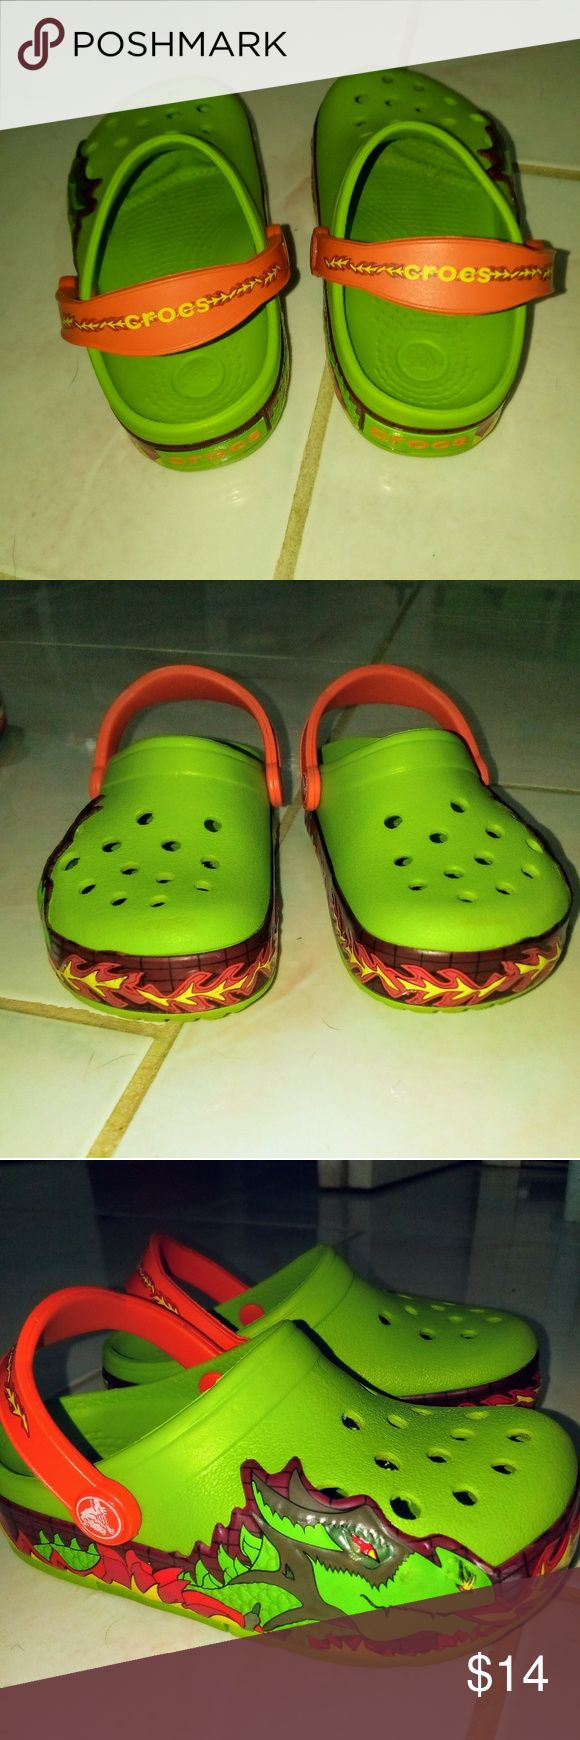 CROCS Toddler boy size C9 dragon light-ups CROCS Toddler boy size C9.  Your child will love the fire-breathing dragon on the sides and the red light-headed feature!very good condition, barely worn!  Super cool, fun, and comfy! CROCS Shoes Sandals & Flip Flops